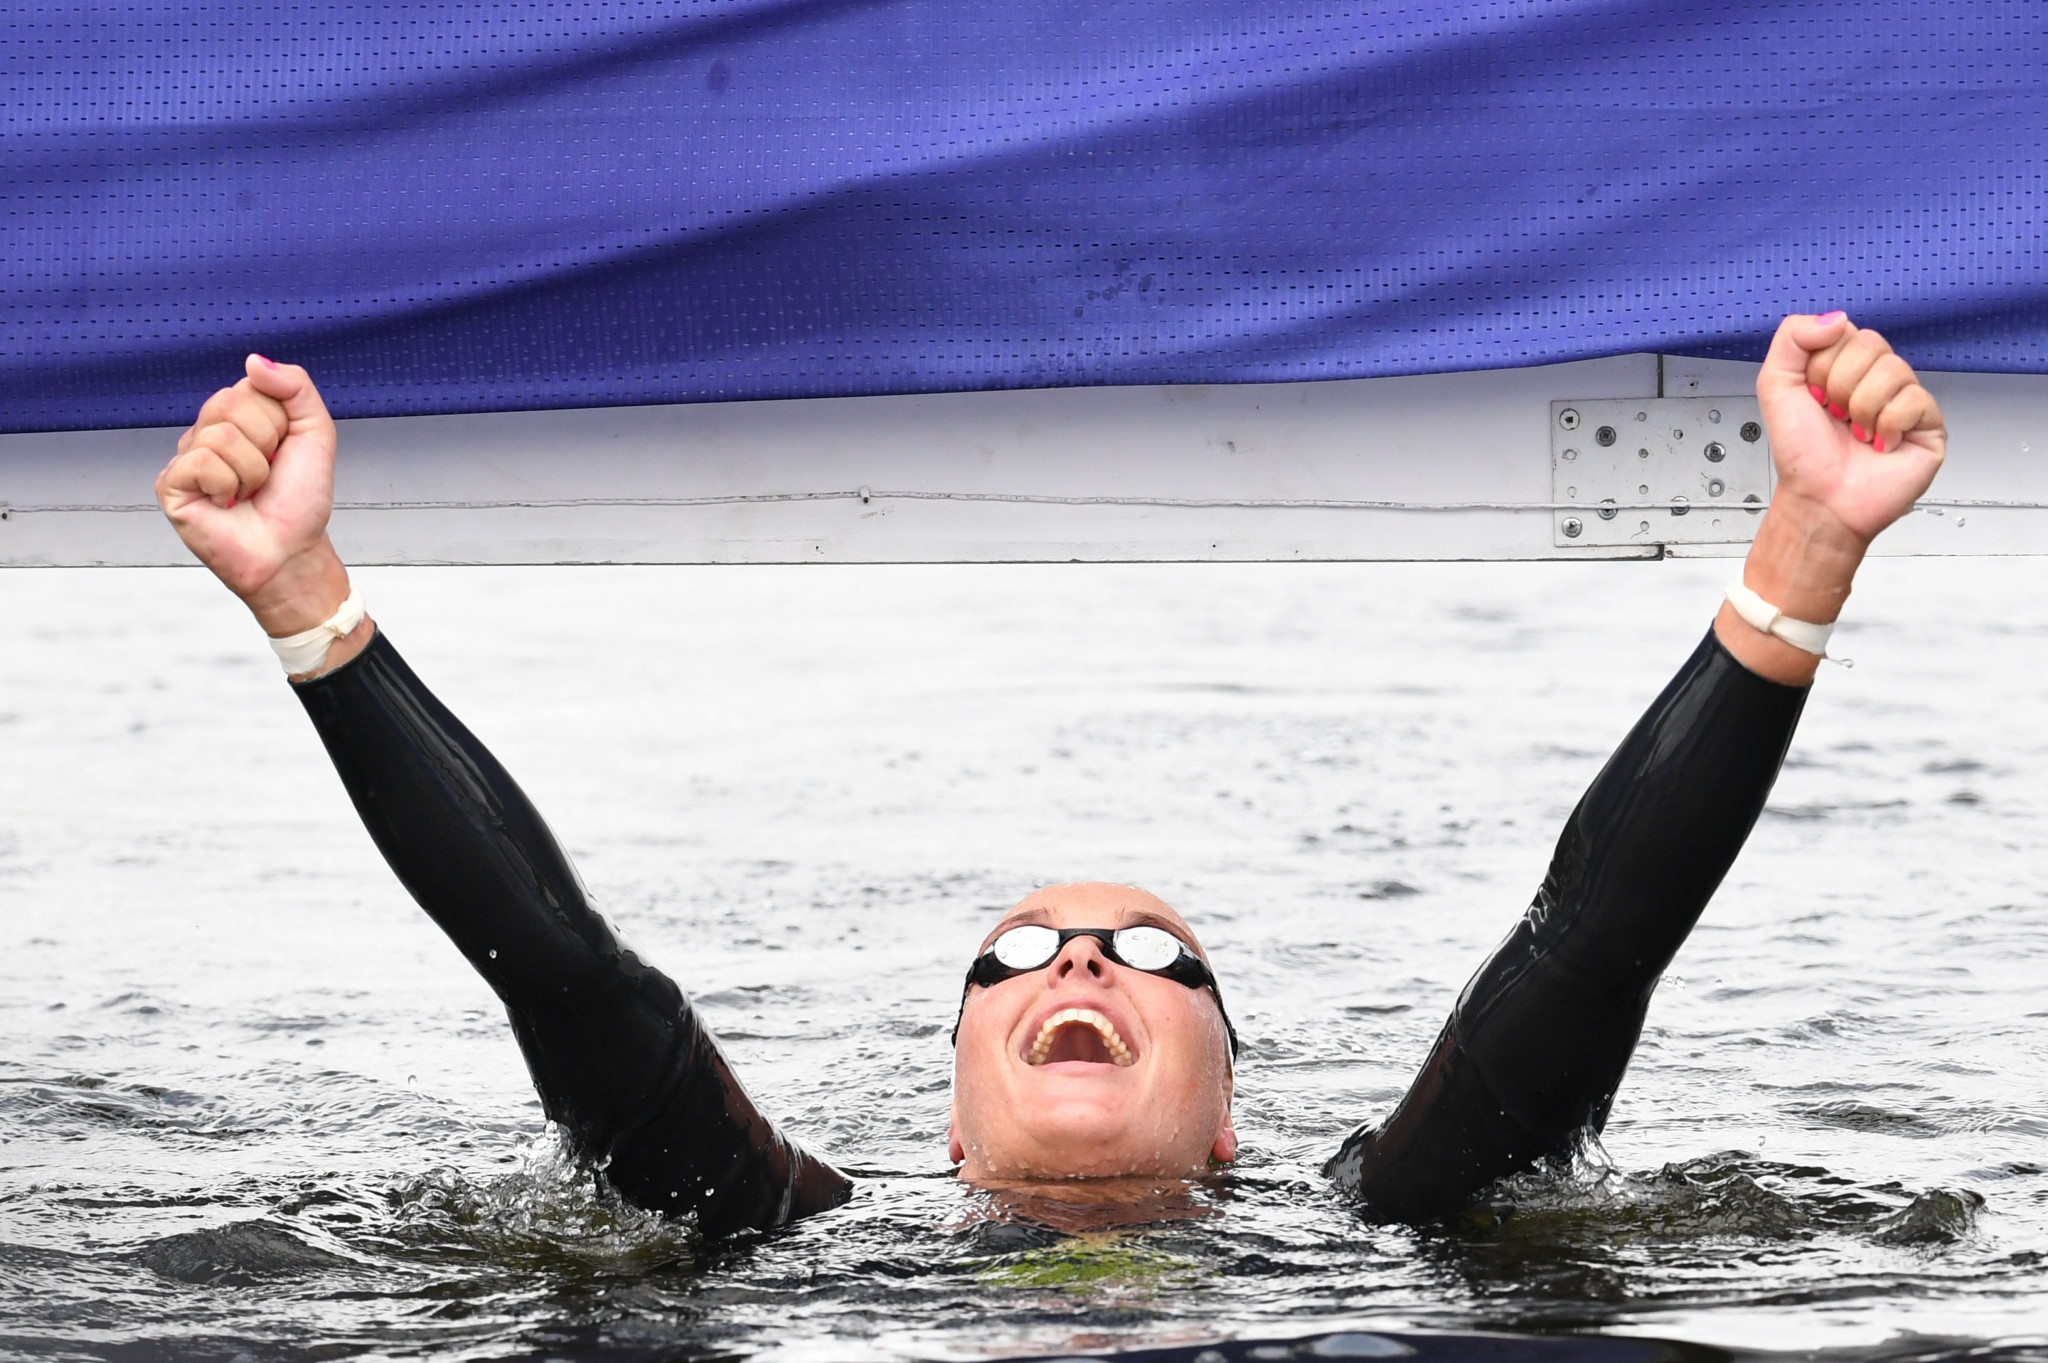 Van Rouwendaal clinches women's 5km open water swimming title at European Championships